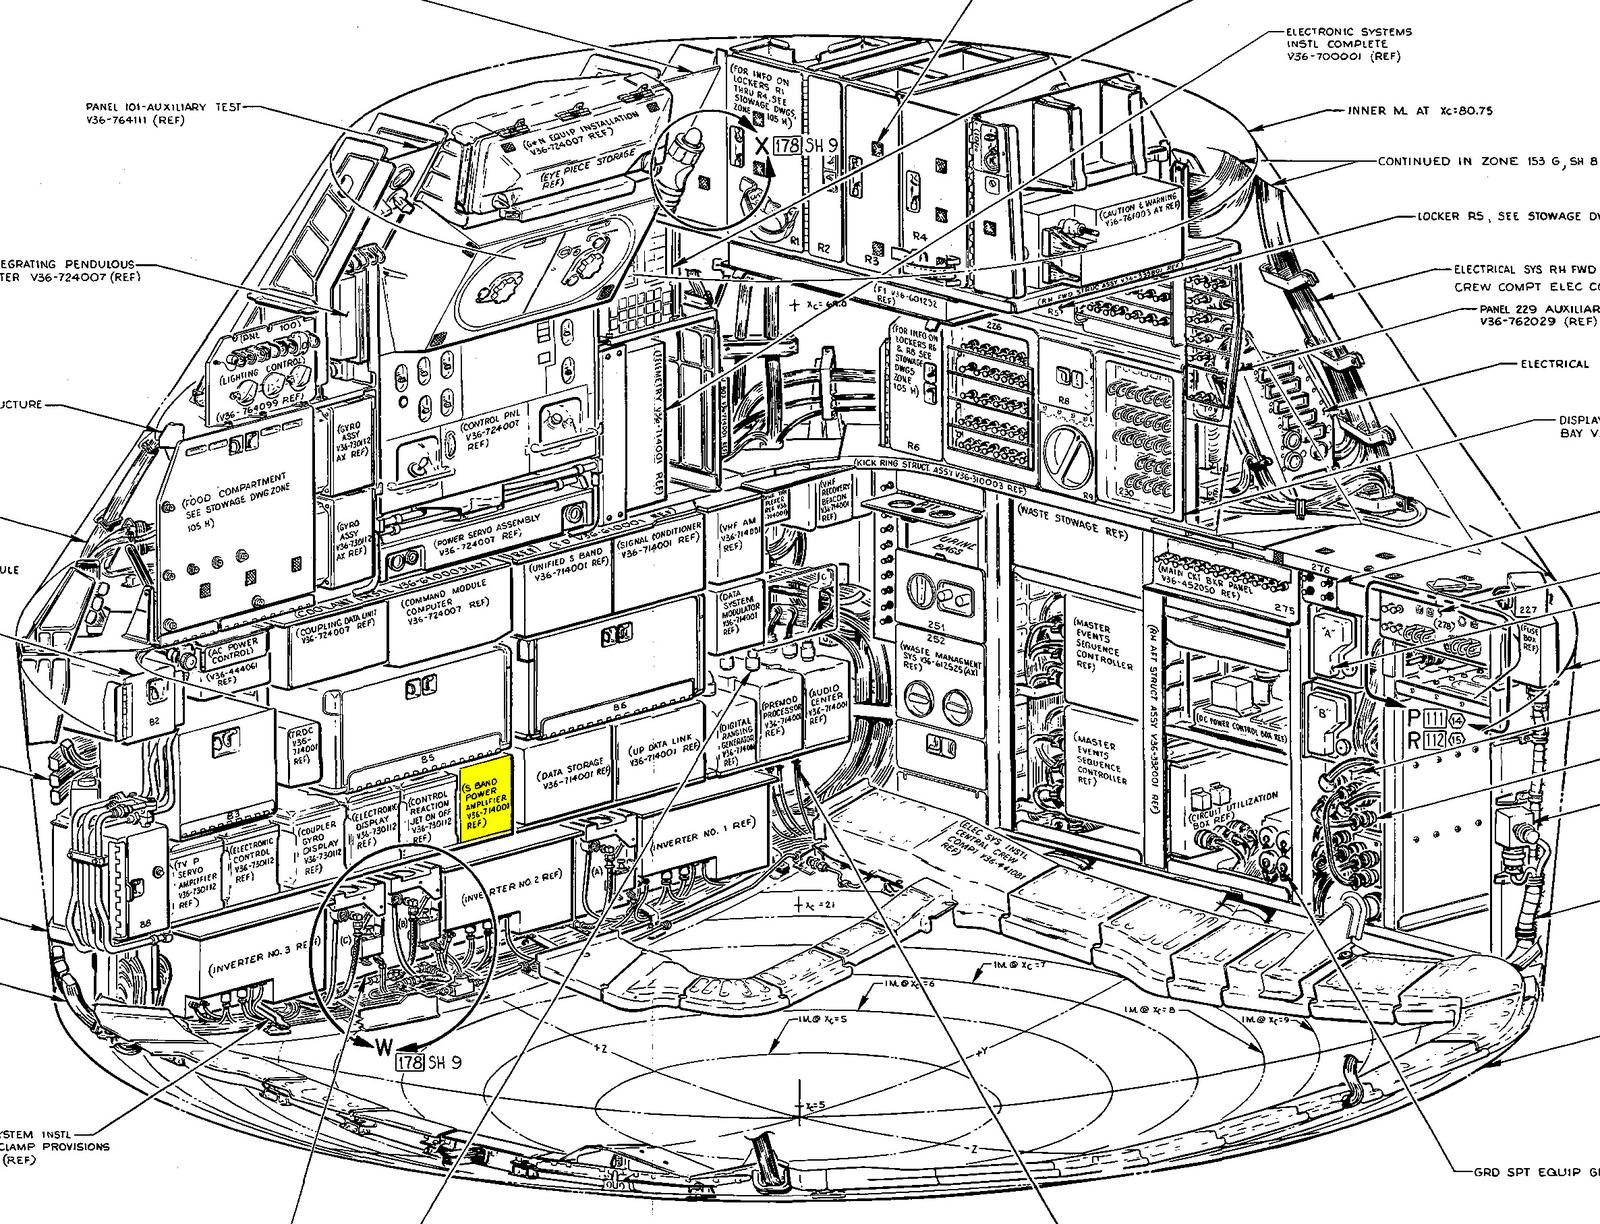 Diagram of the Apollo Command Module's equipment bay with the S-band power amplifier highlighted. From Command/Service Module Systems Handbook p212.